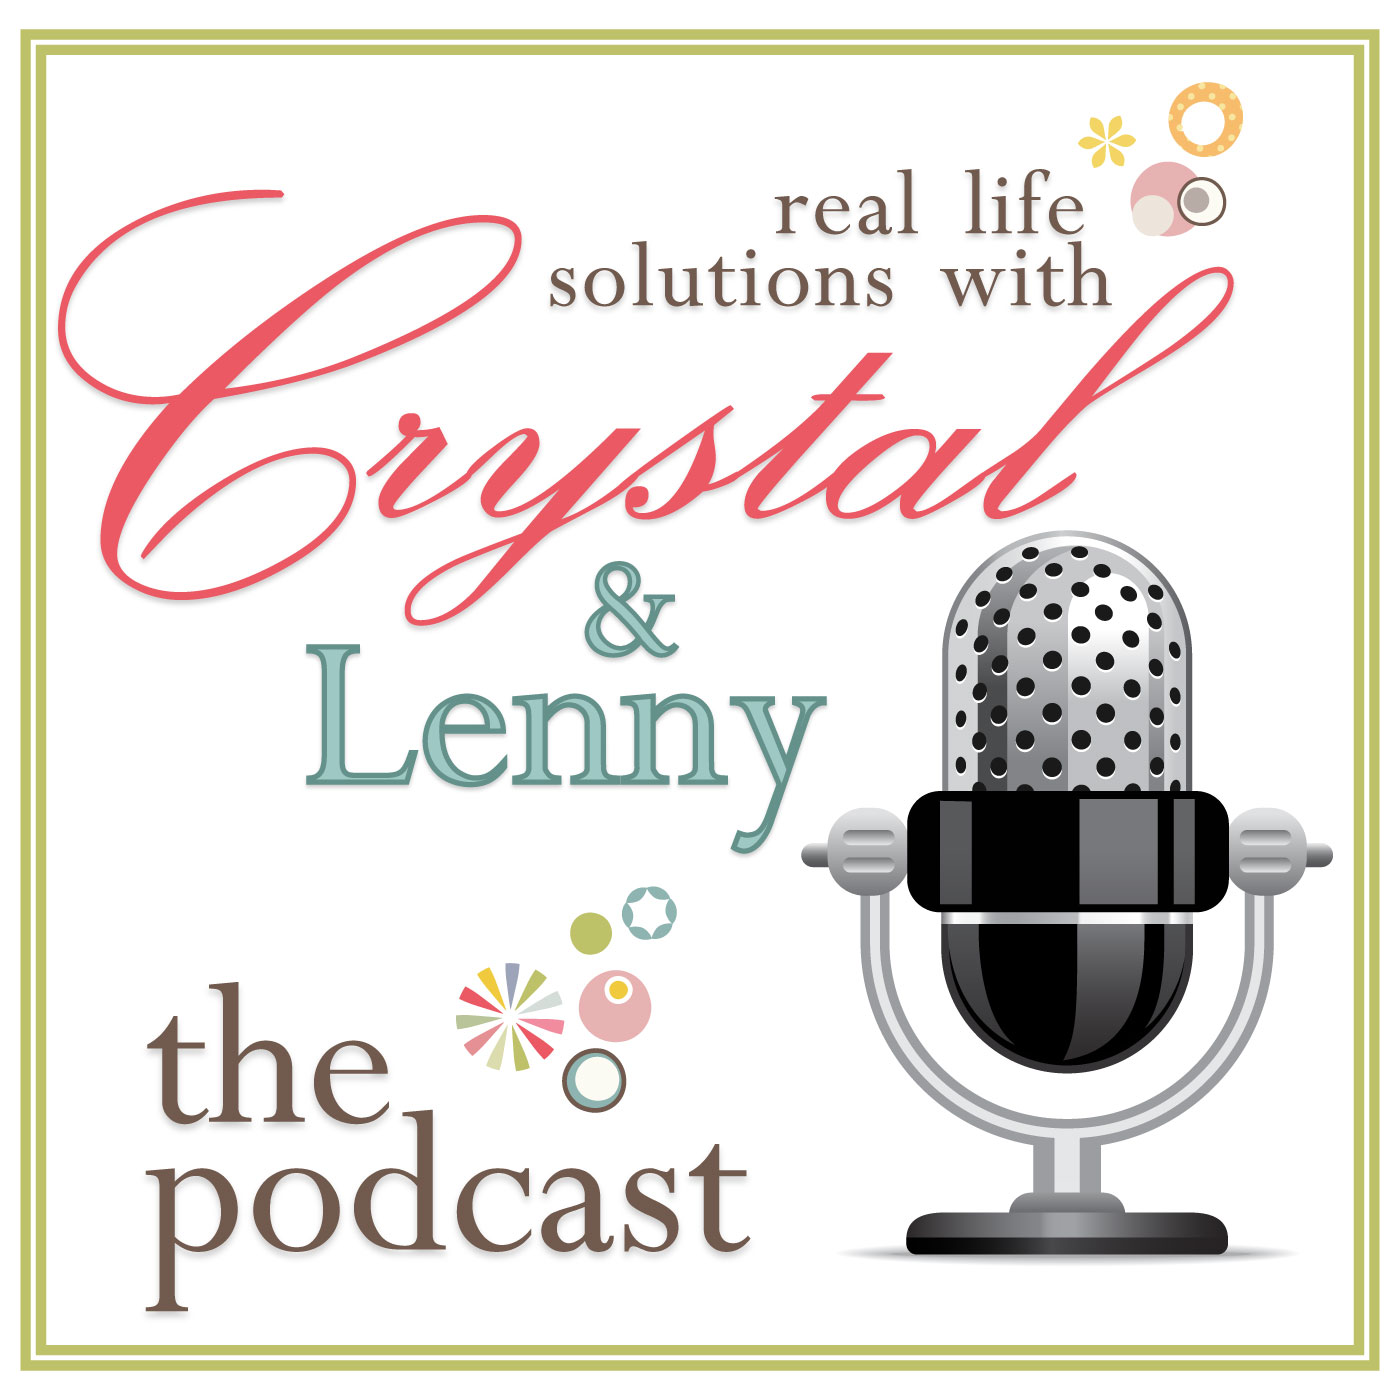 Crystal & Co. Podcast: Real Life Solutions with Crystal & Lenny